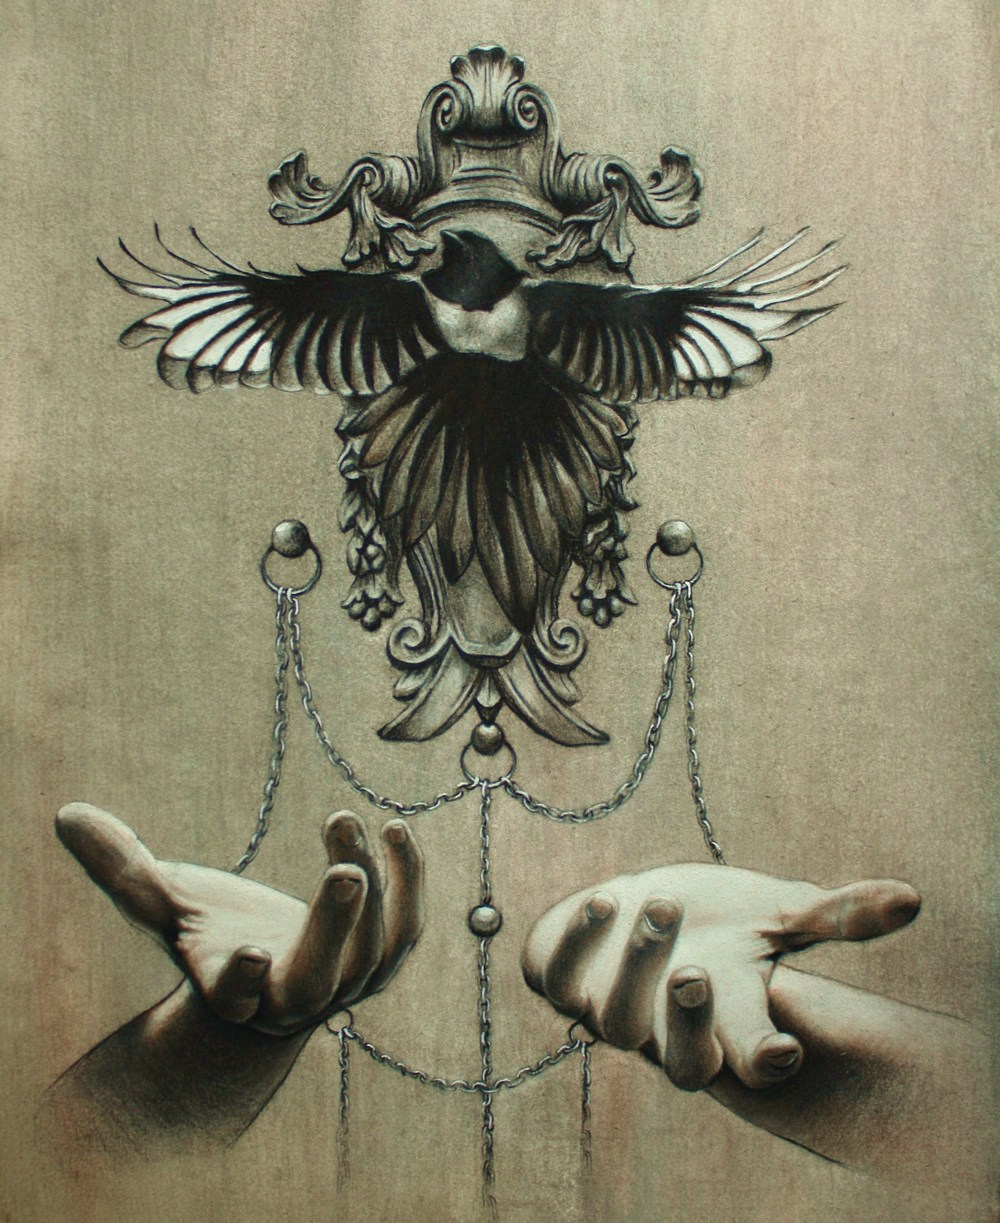 "Gilded, graphite and charcoal, 12"" x 18"", 2013"